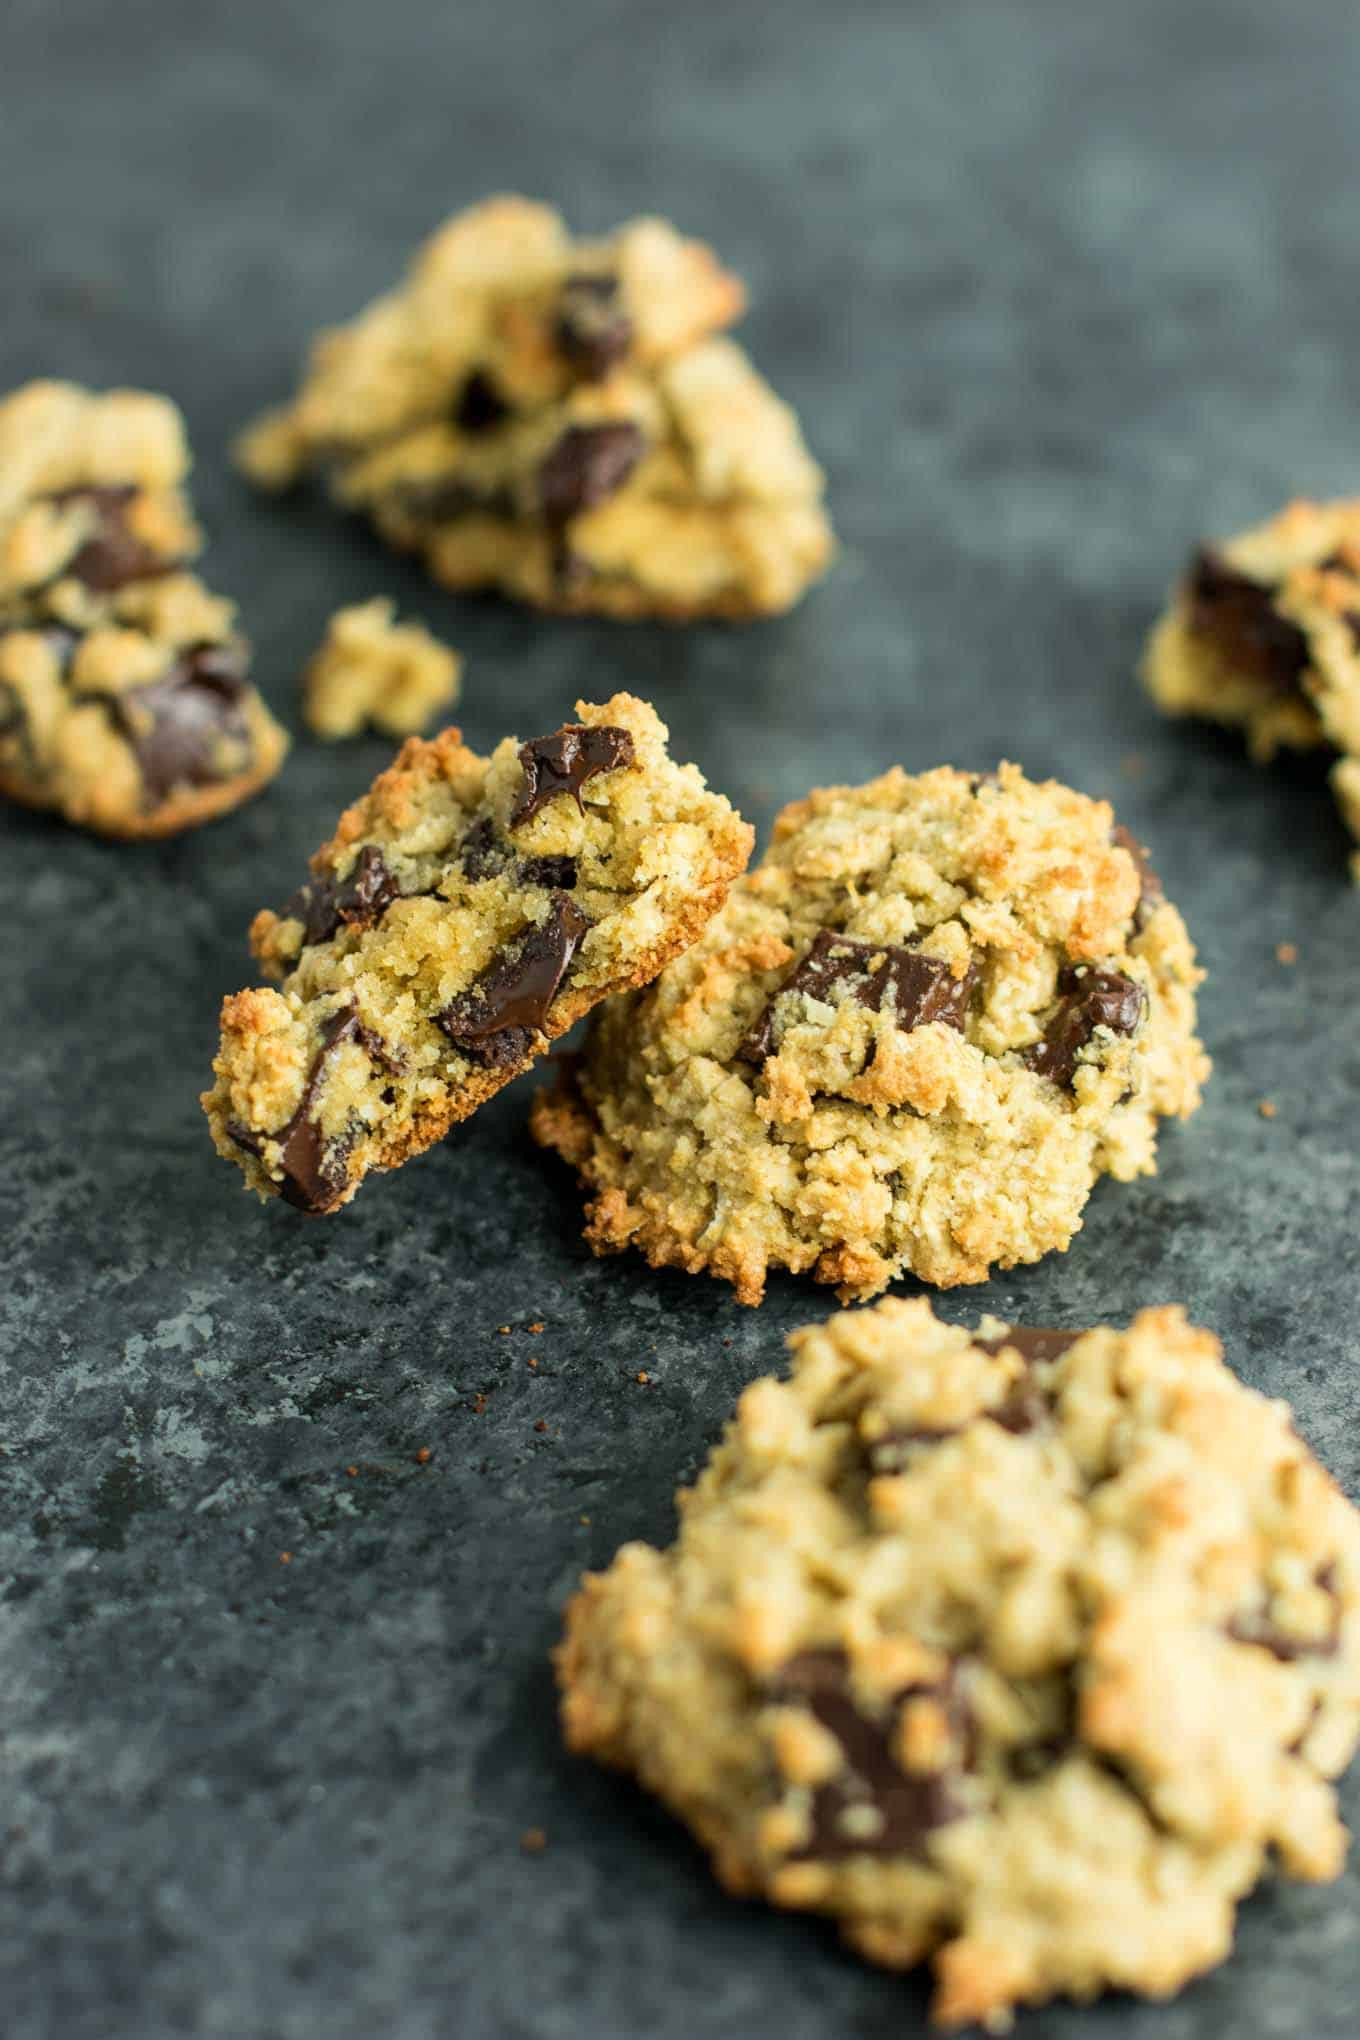 Gluten Free Oatmeal Chocolate Chip Cookies  Gluten Free Oatmeal Chocolate Chip Cookies Recipe with